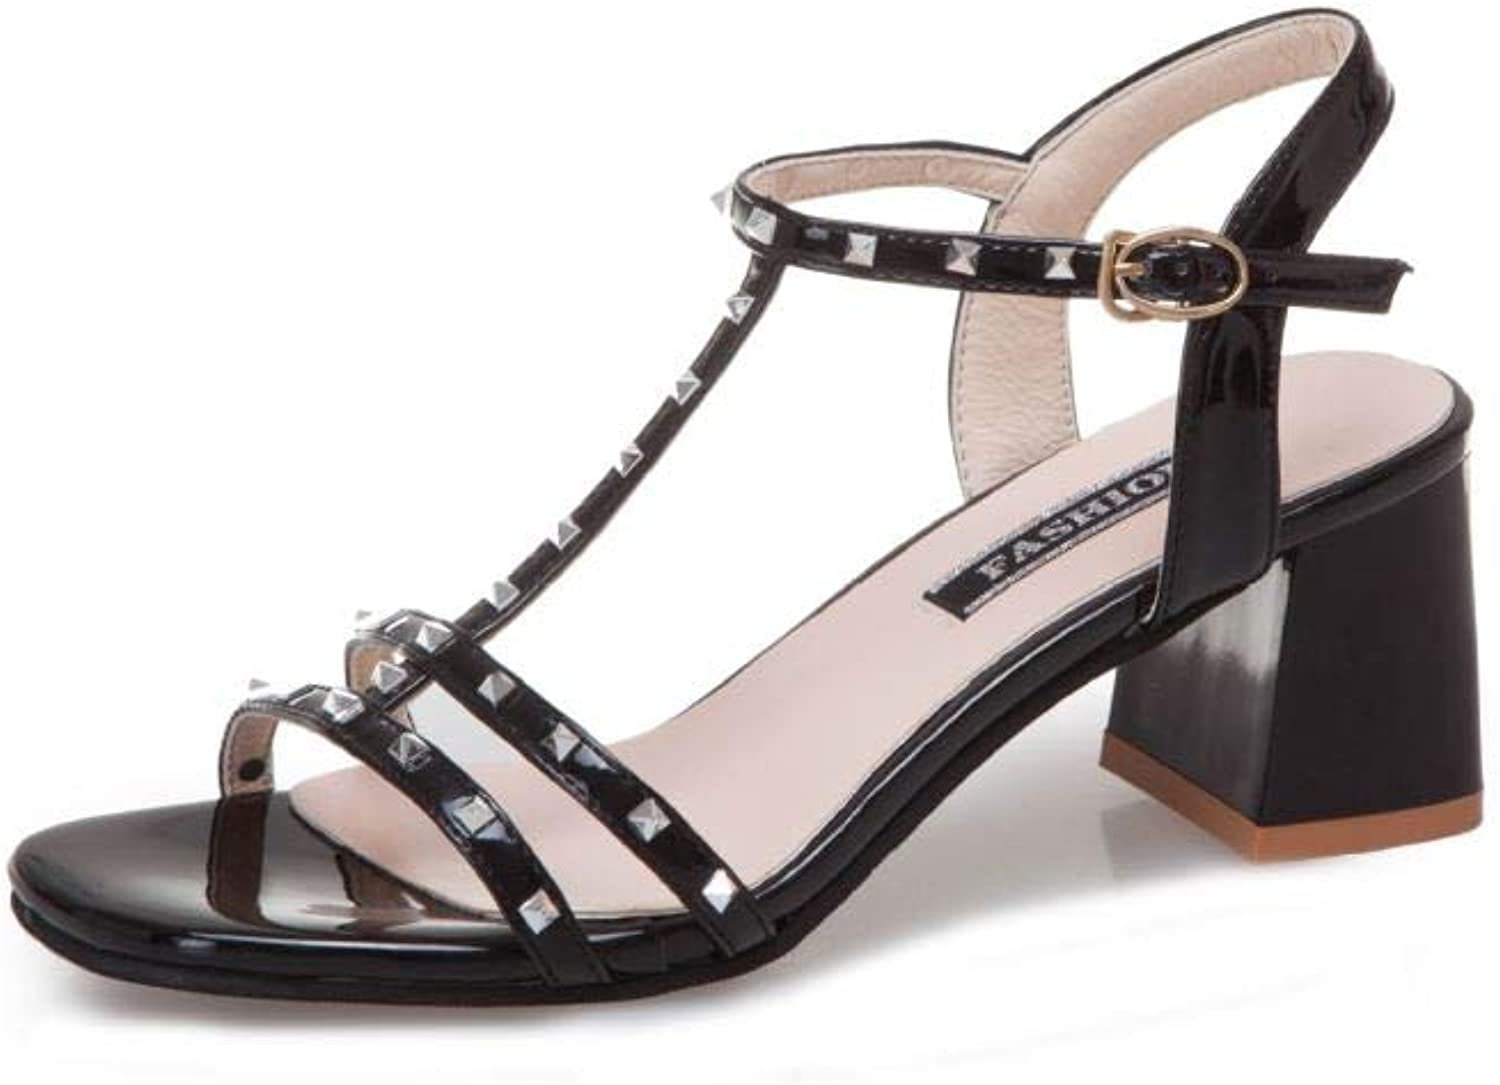 Unanshengenefi Rivet Sandals Female 2019 Summer New Korean Version of The Wild Word Buckle T-Type Straps with The Square Head high-Heeled shoes Tide